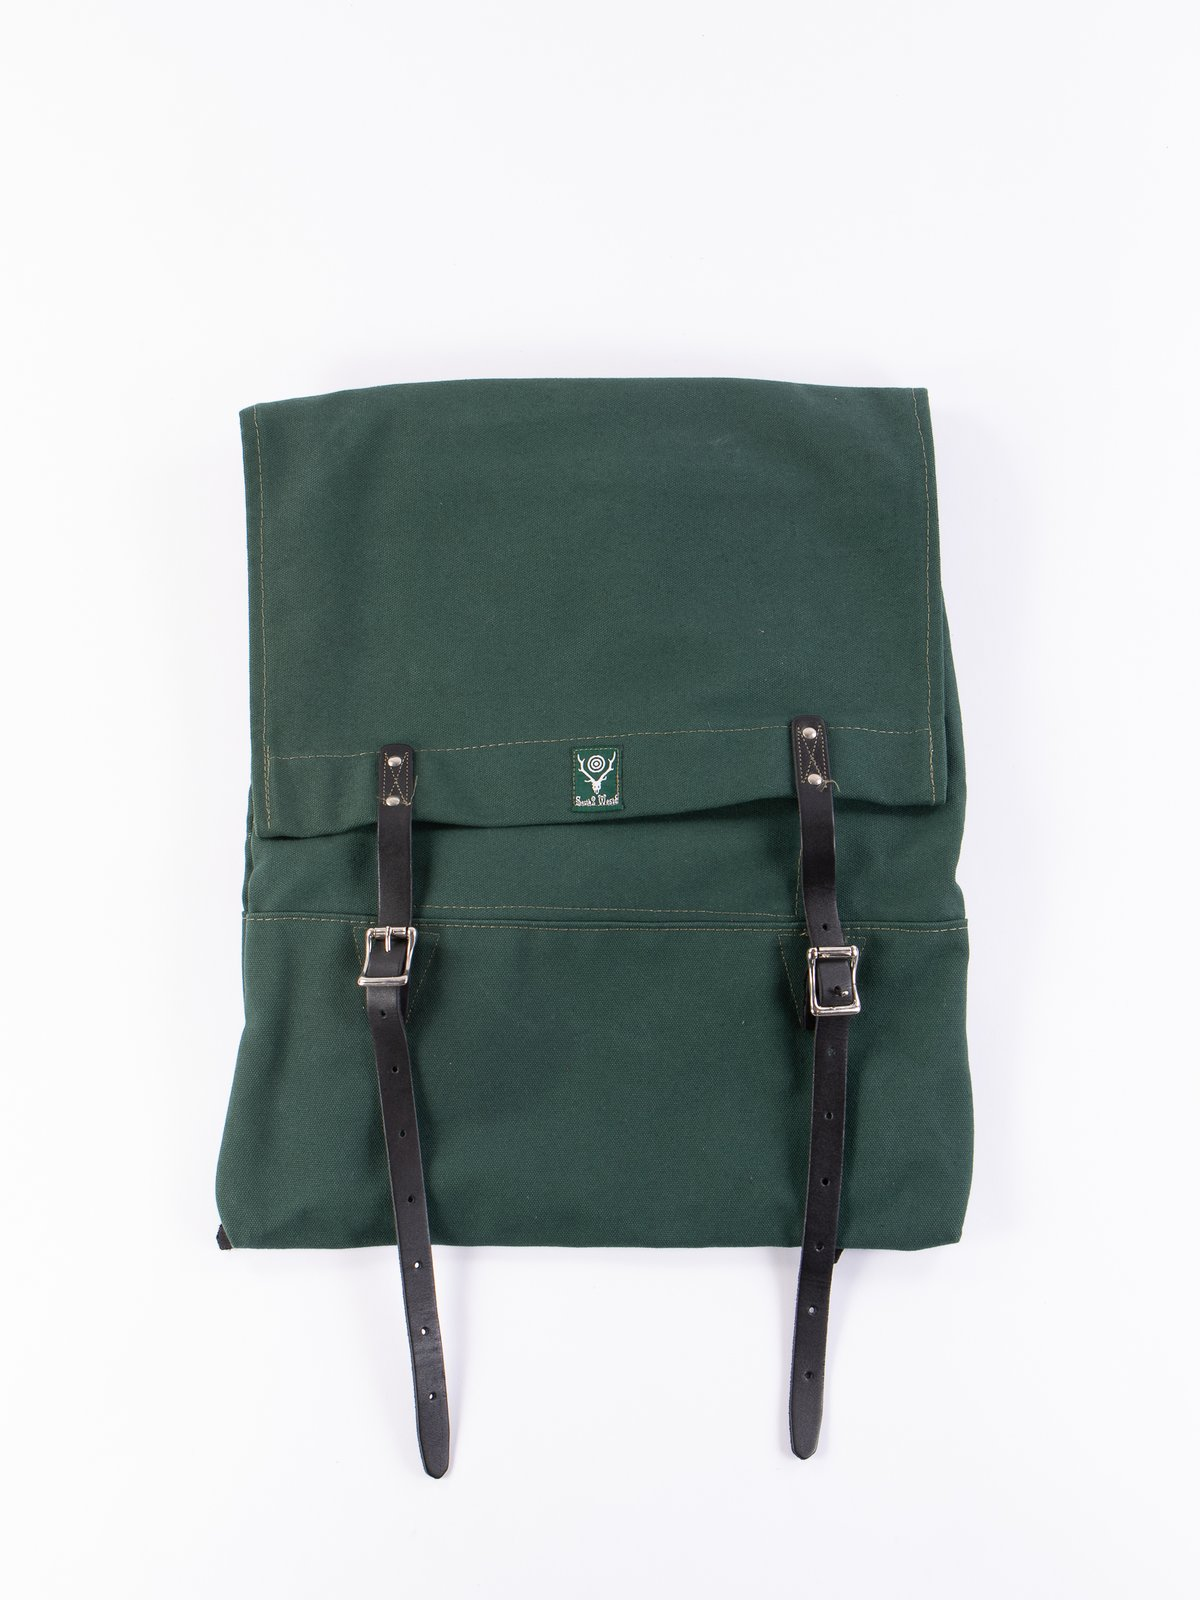 Hunter Green 18oz Canvas Canal Park Tote - Image 4